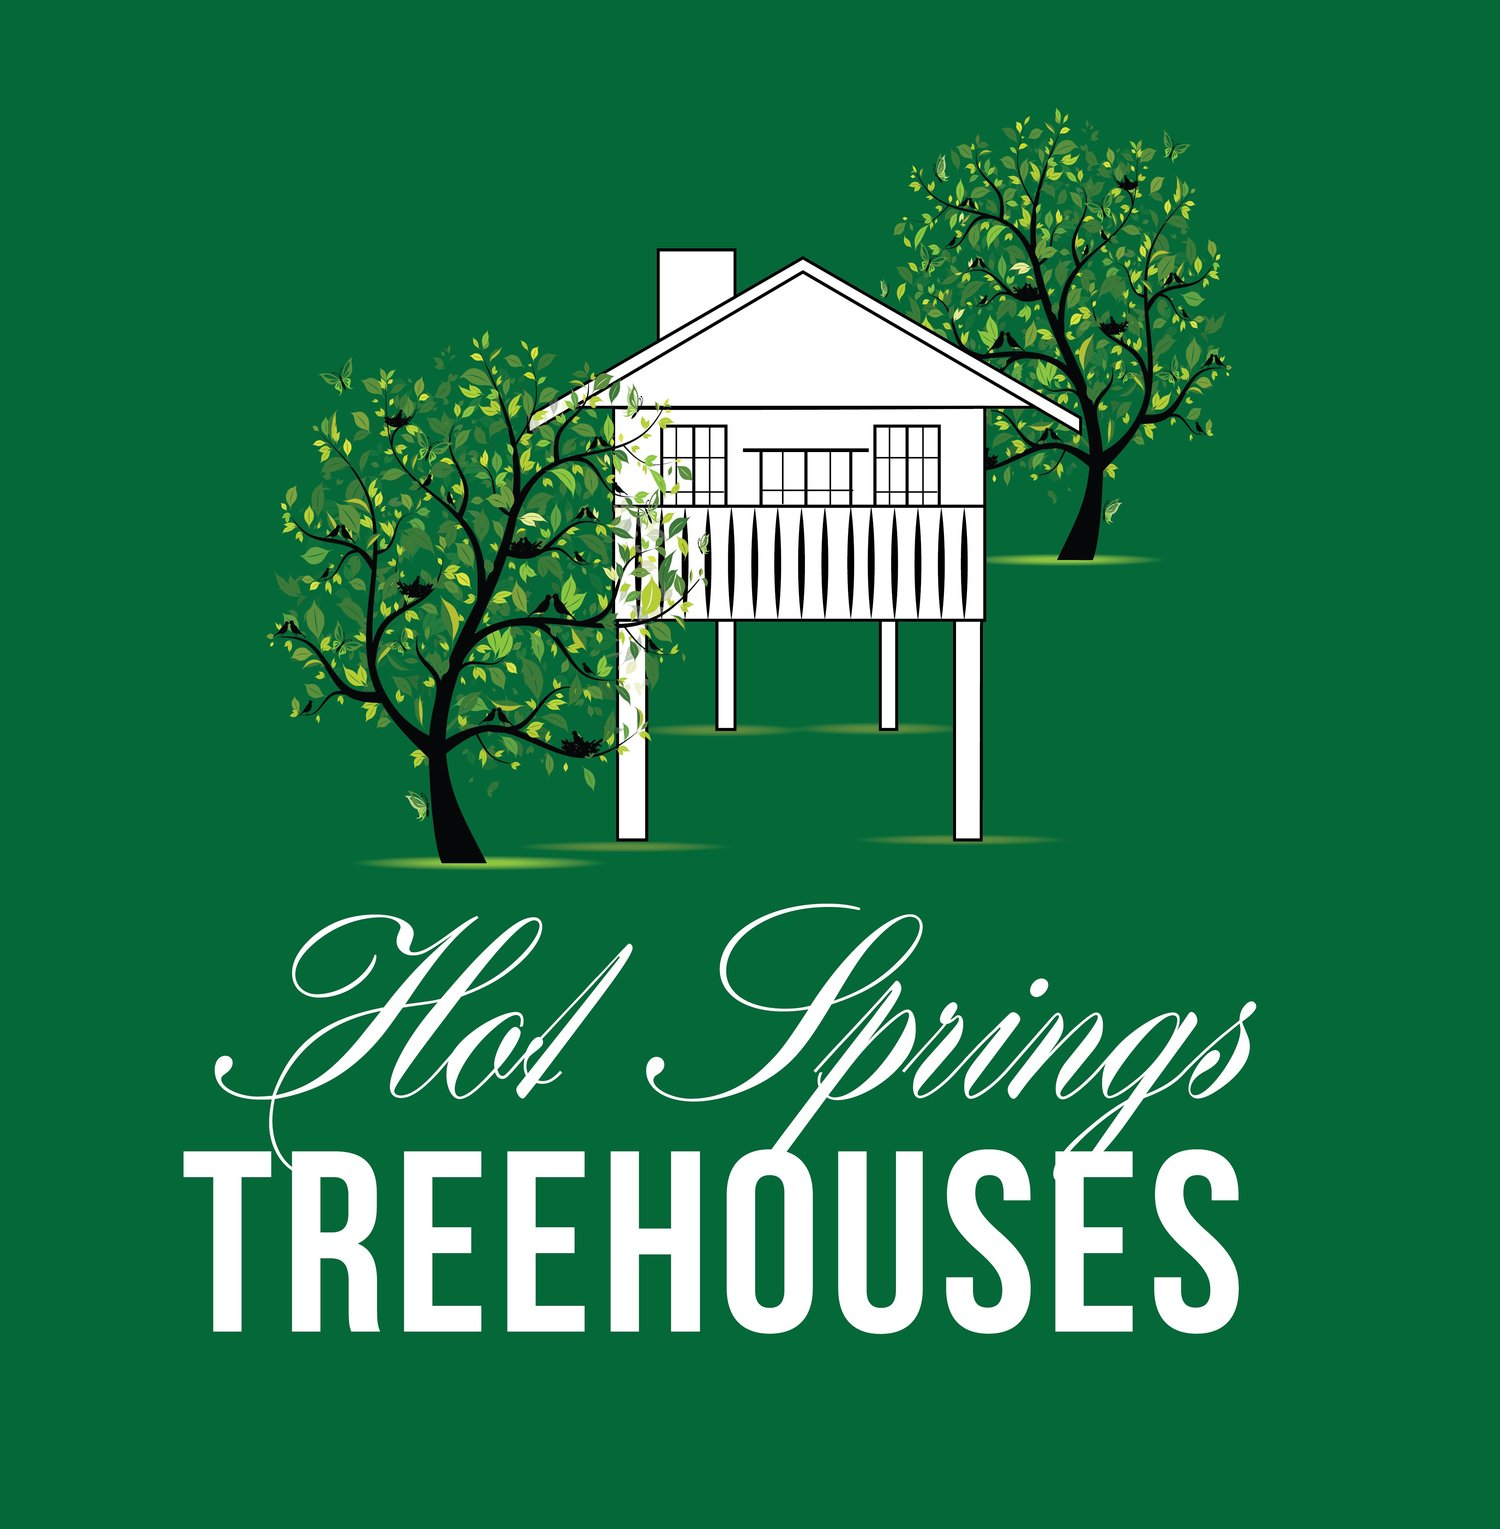 Hot Springs Treehouses